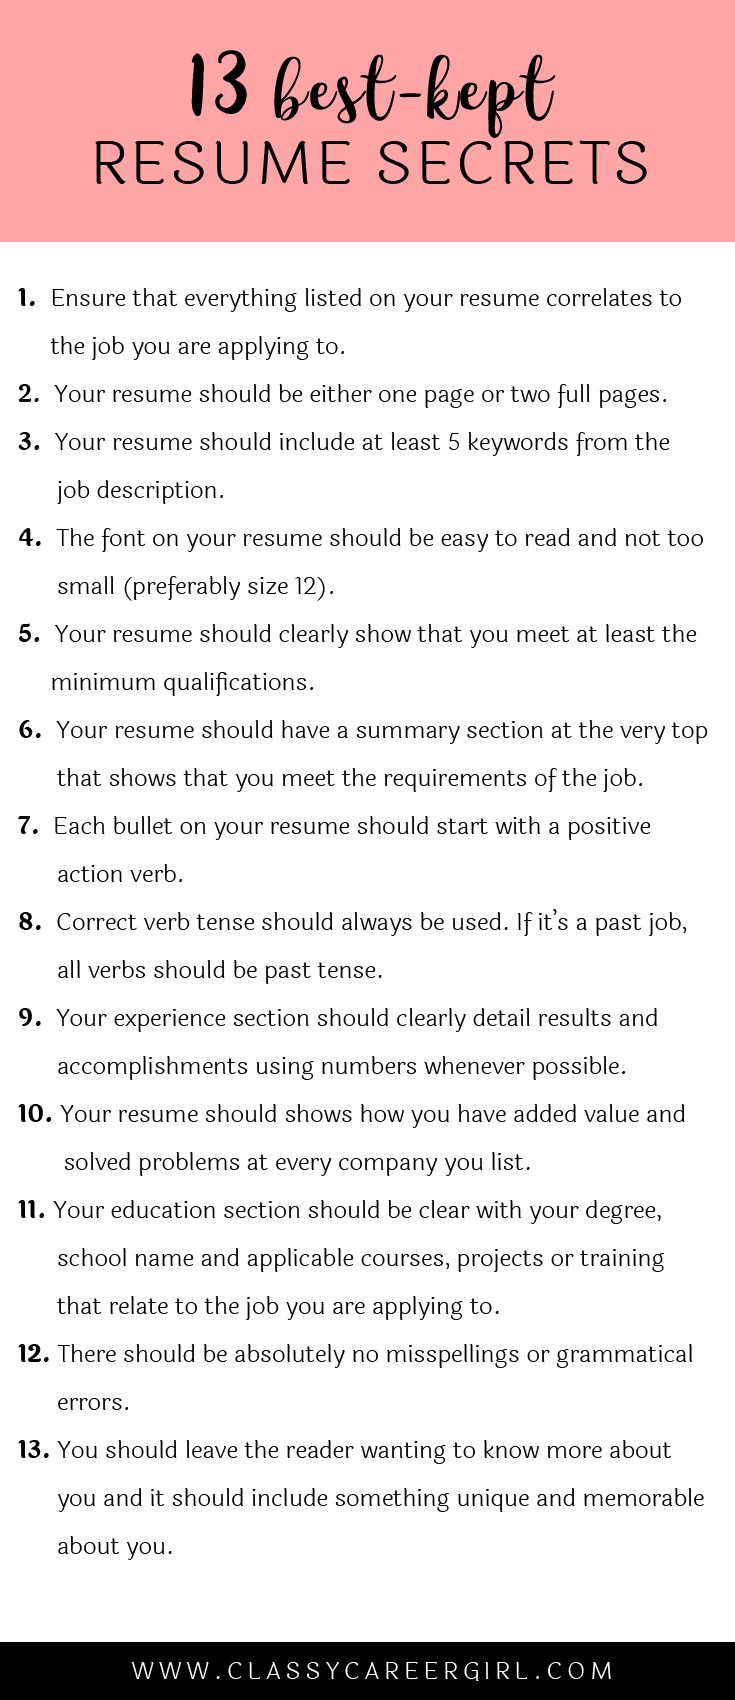 Picnictoimpeachus  Wonderful  Ideas About Resume On Pinterest  Cv Format Resume Cv And  With Excellent Some Hiring Managers Will Toss Your Resume Out If You Dont Know These  With Enchanting Ma Resume Also Advertising Resume Examples In Addition Creative Resume Samples And Fire Chief Resume As Well As Resume Builders Online Additionally Resume Examples For Cashier From Pinterestcom With Picnictoimpeachus  Excellent  Ideas About Resume On Pinterest  Cv Format Resume Cv And  With Enchanting Some Hiring Managers Will Toss Your Resume Out If You Dont Know These  And Wonderful Ma Resume Also Advertising Resume Examples In Addition Creative Resume Samples From Pinterestcom